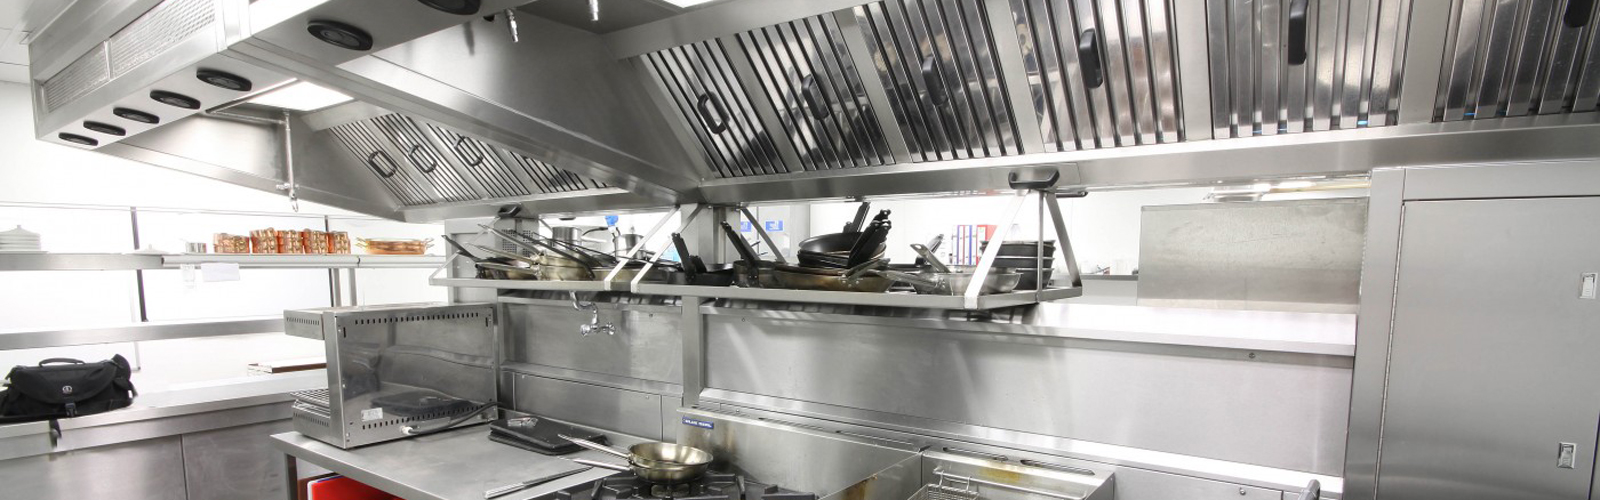 Stainless Steel Commercial Kitchen www.galleryhip.com - The Hippest ...